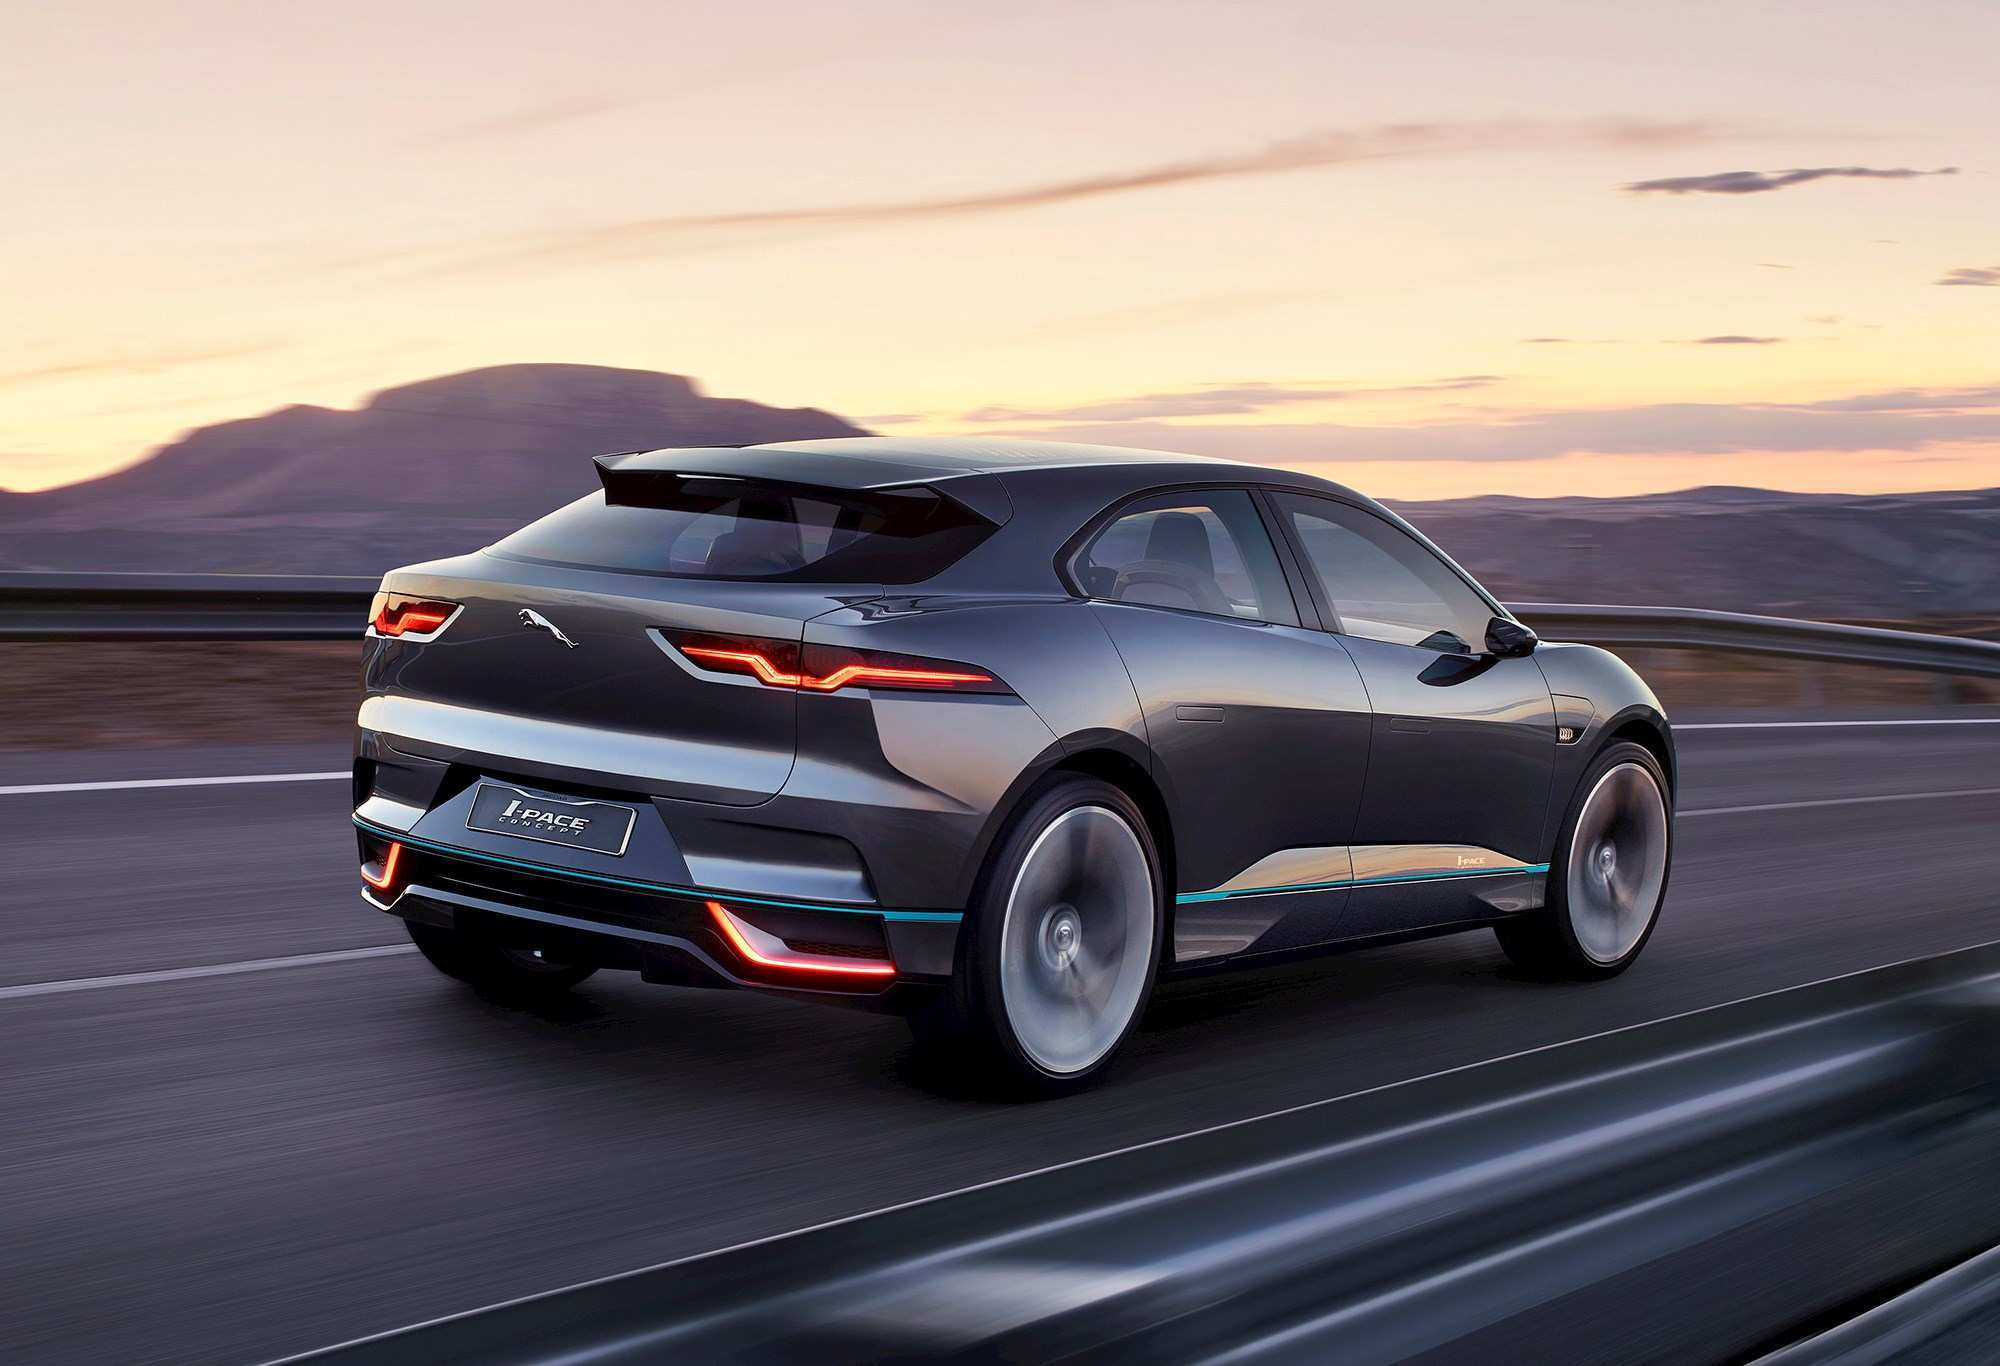 19 The Best 2019 Jaguar I Pace Release Date Price And Release Date